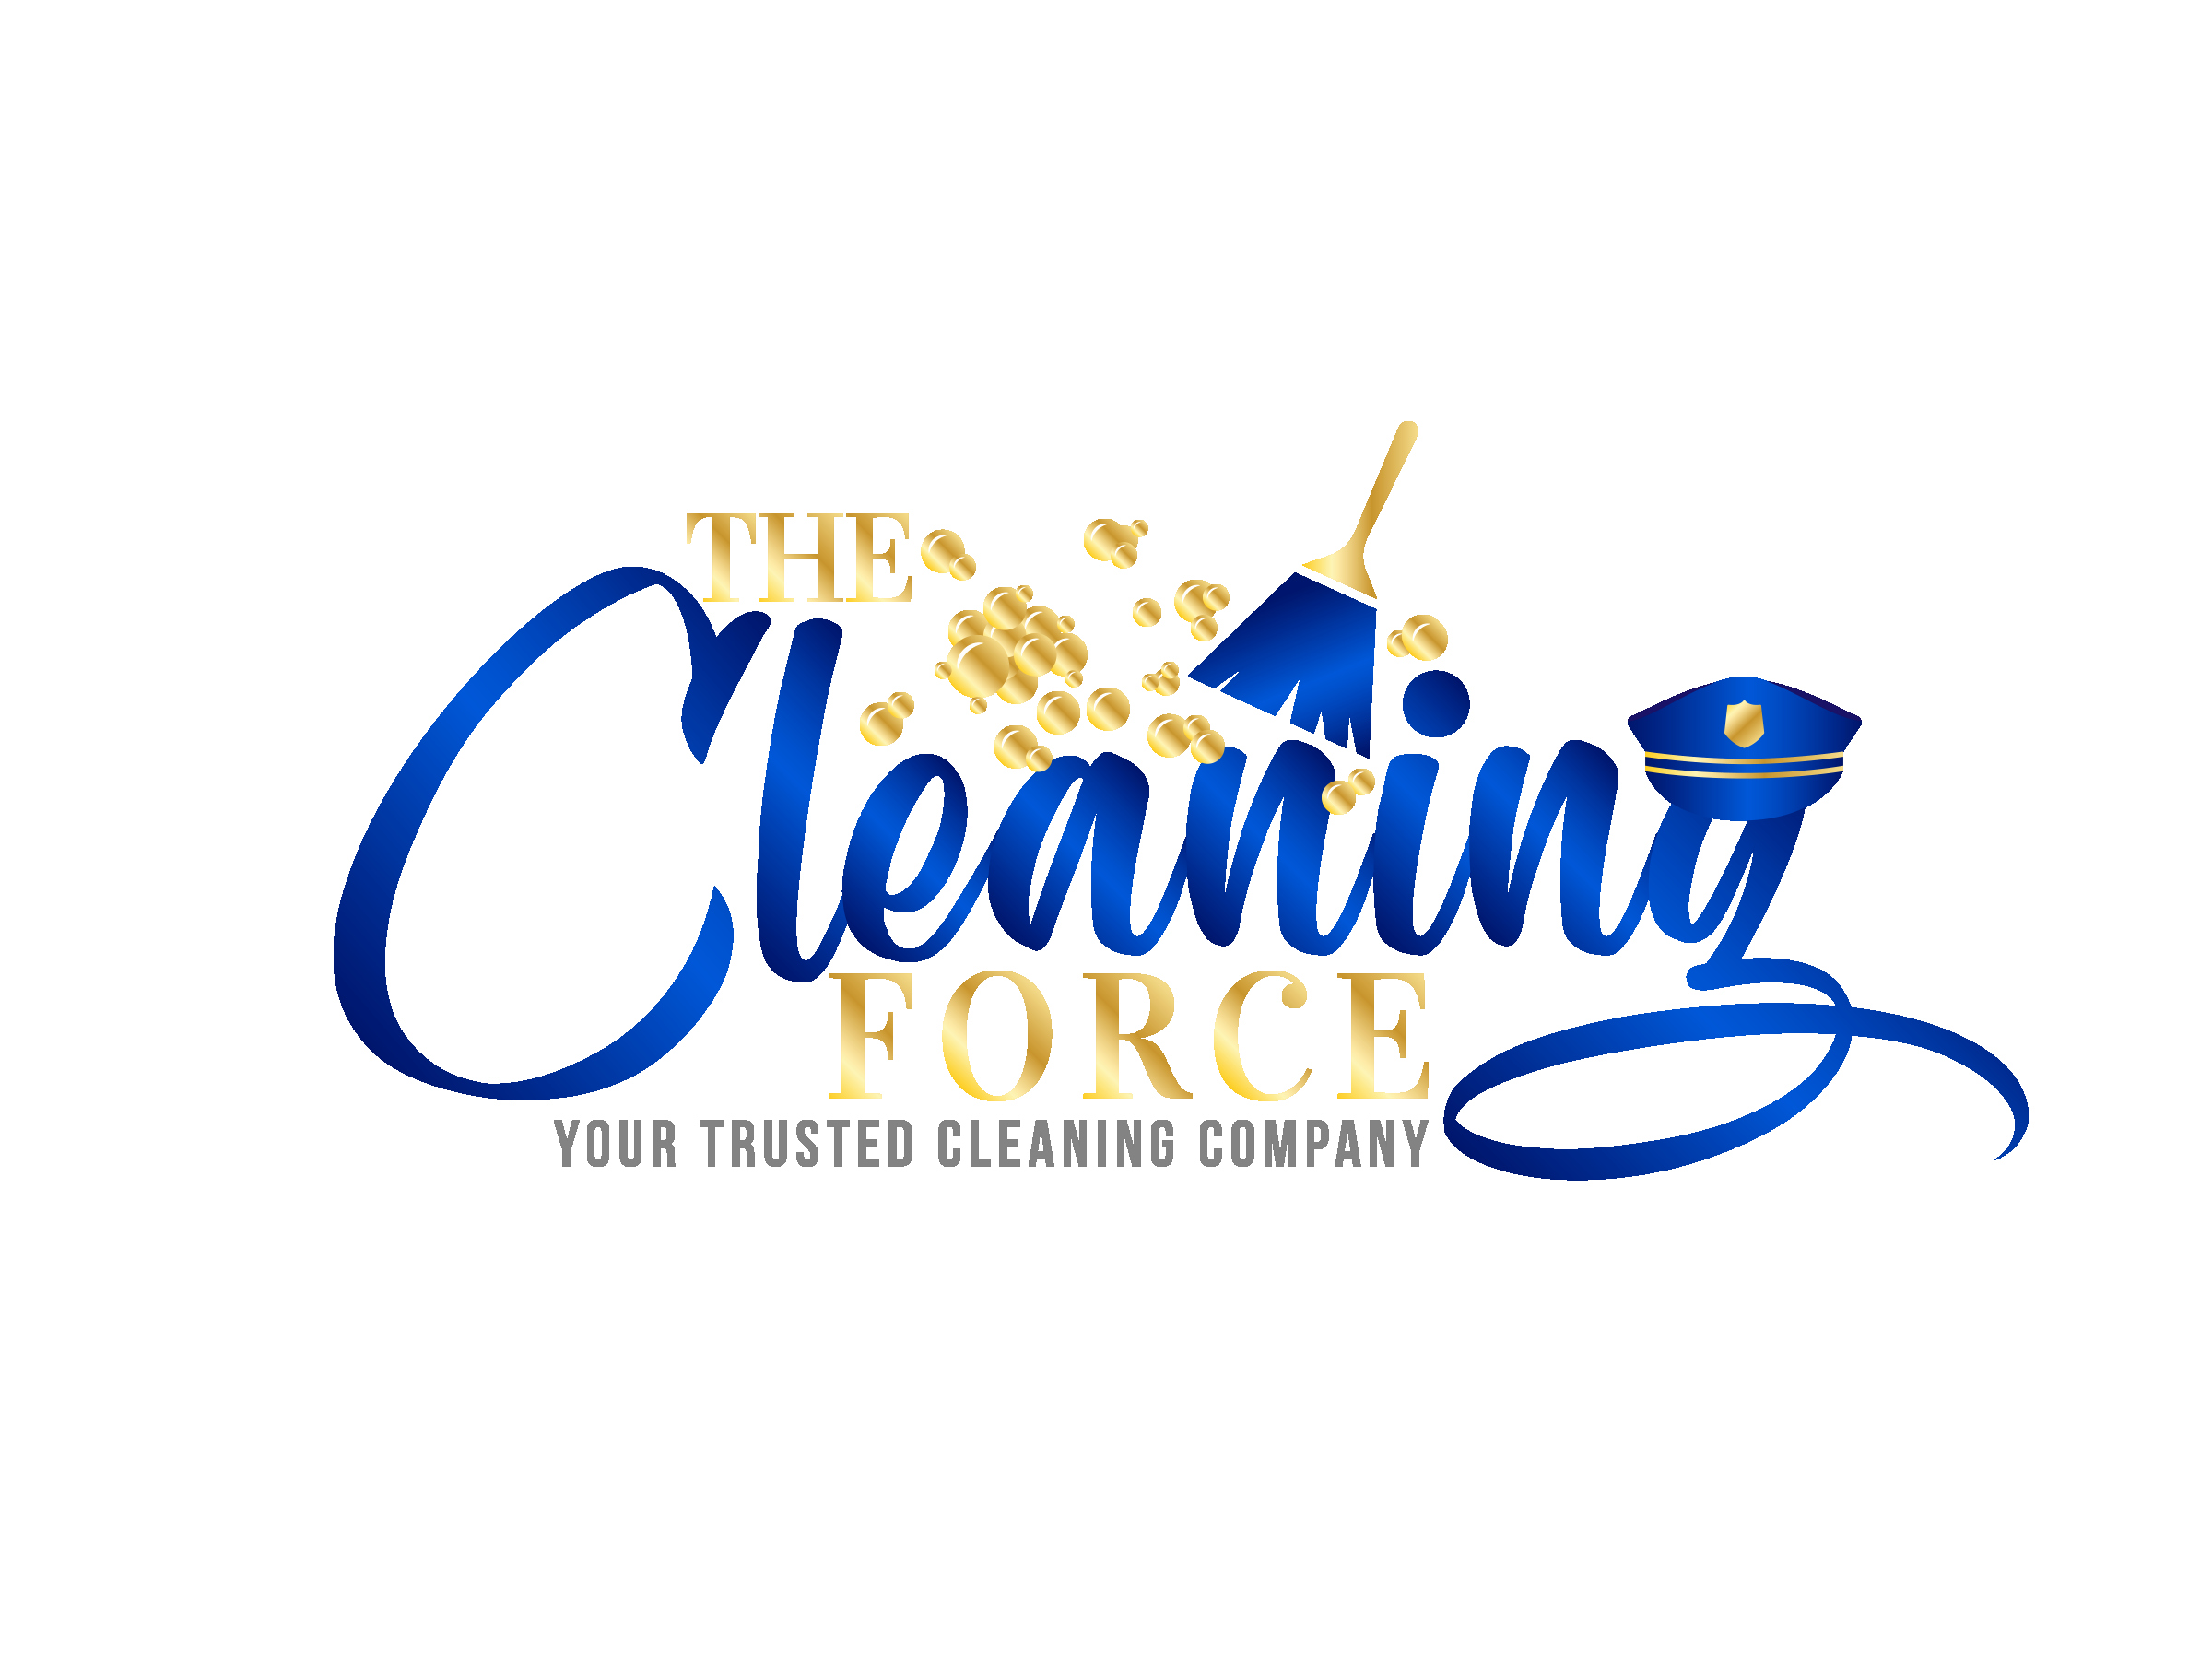 House Cleaning Logo Images Elegant the Cleaning force Donates House Cleaning to Women with Cancer Cleaning for A Reason